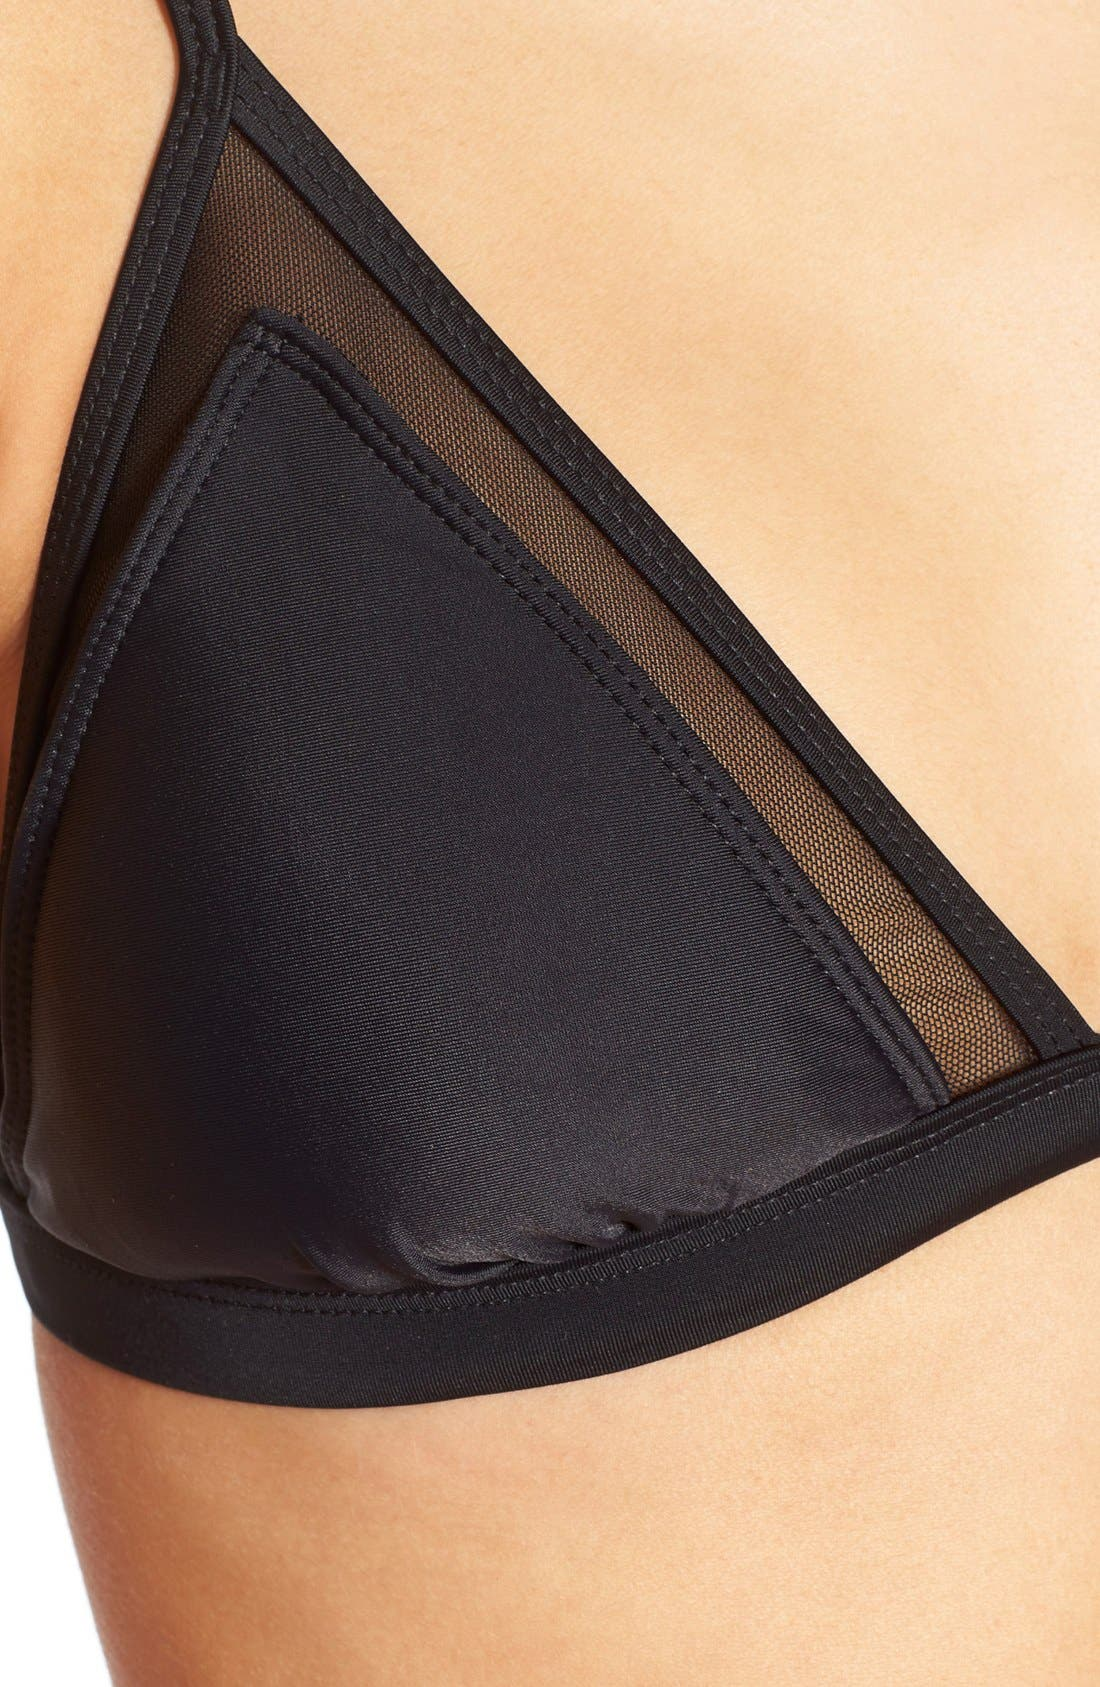 Mesh Triangle Bikini Top,                             Alternate thumbnail 6, color,                             001